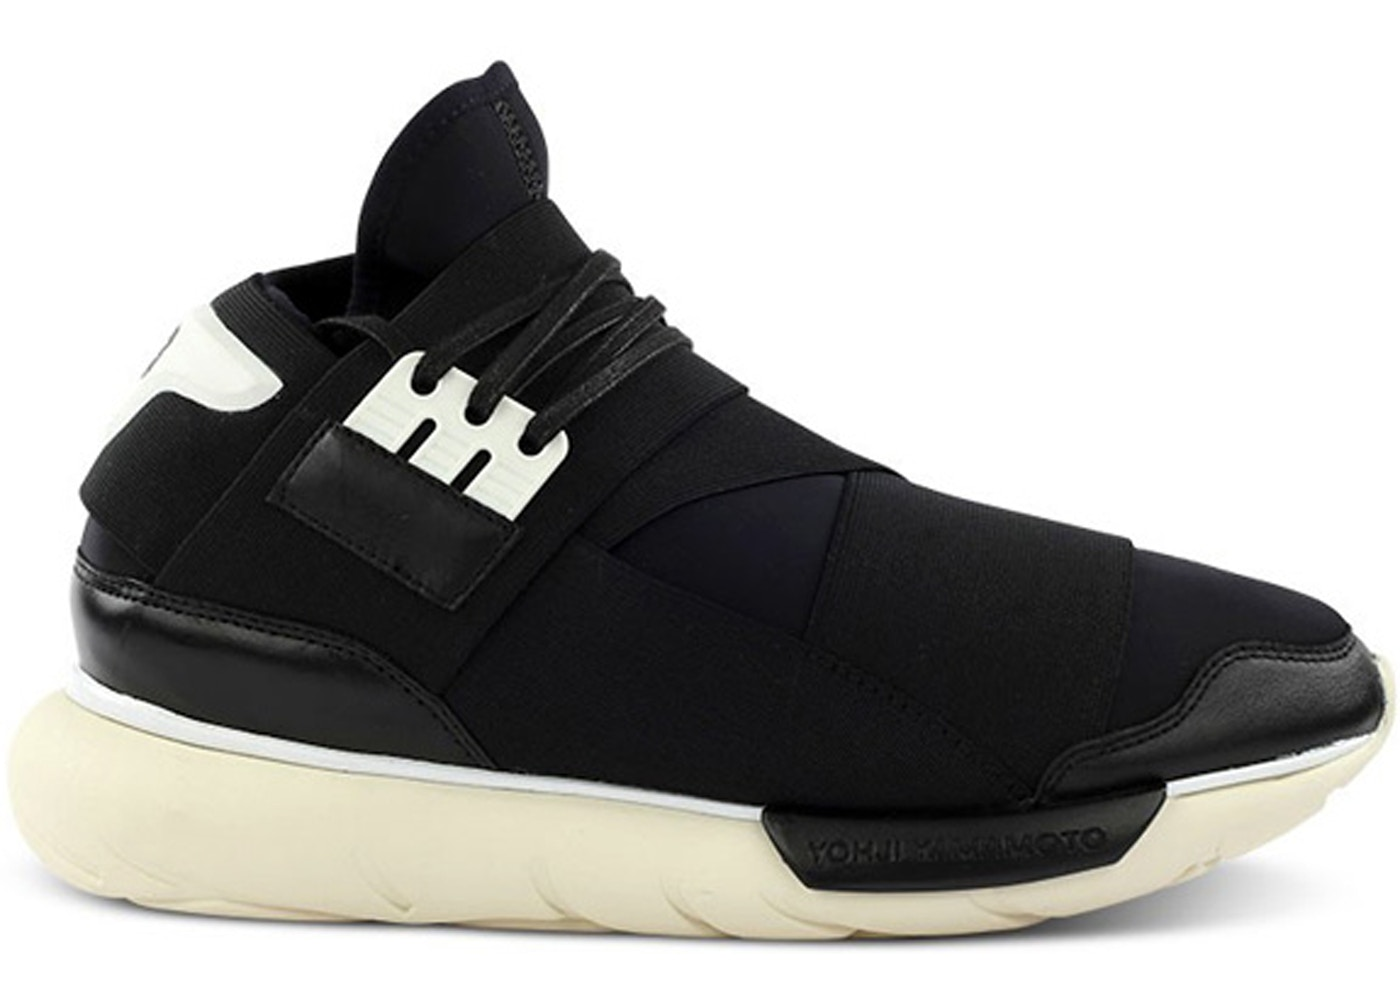 0eed65ec170d Sell. or Ask. Size 8. View All Bids. adidas Y-3 Qasa High ...